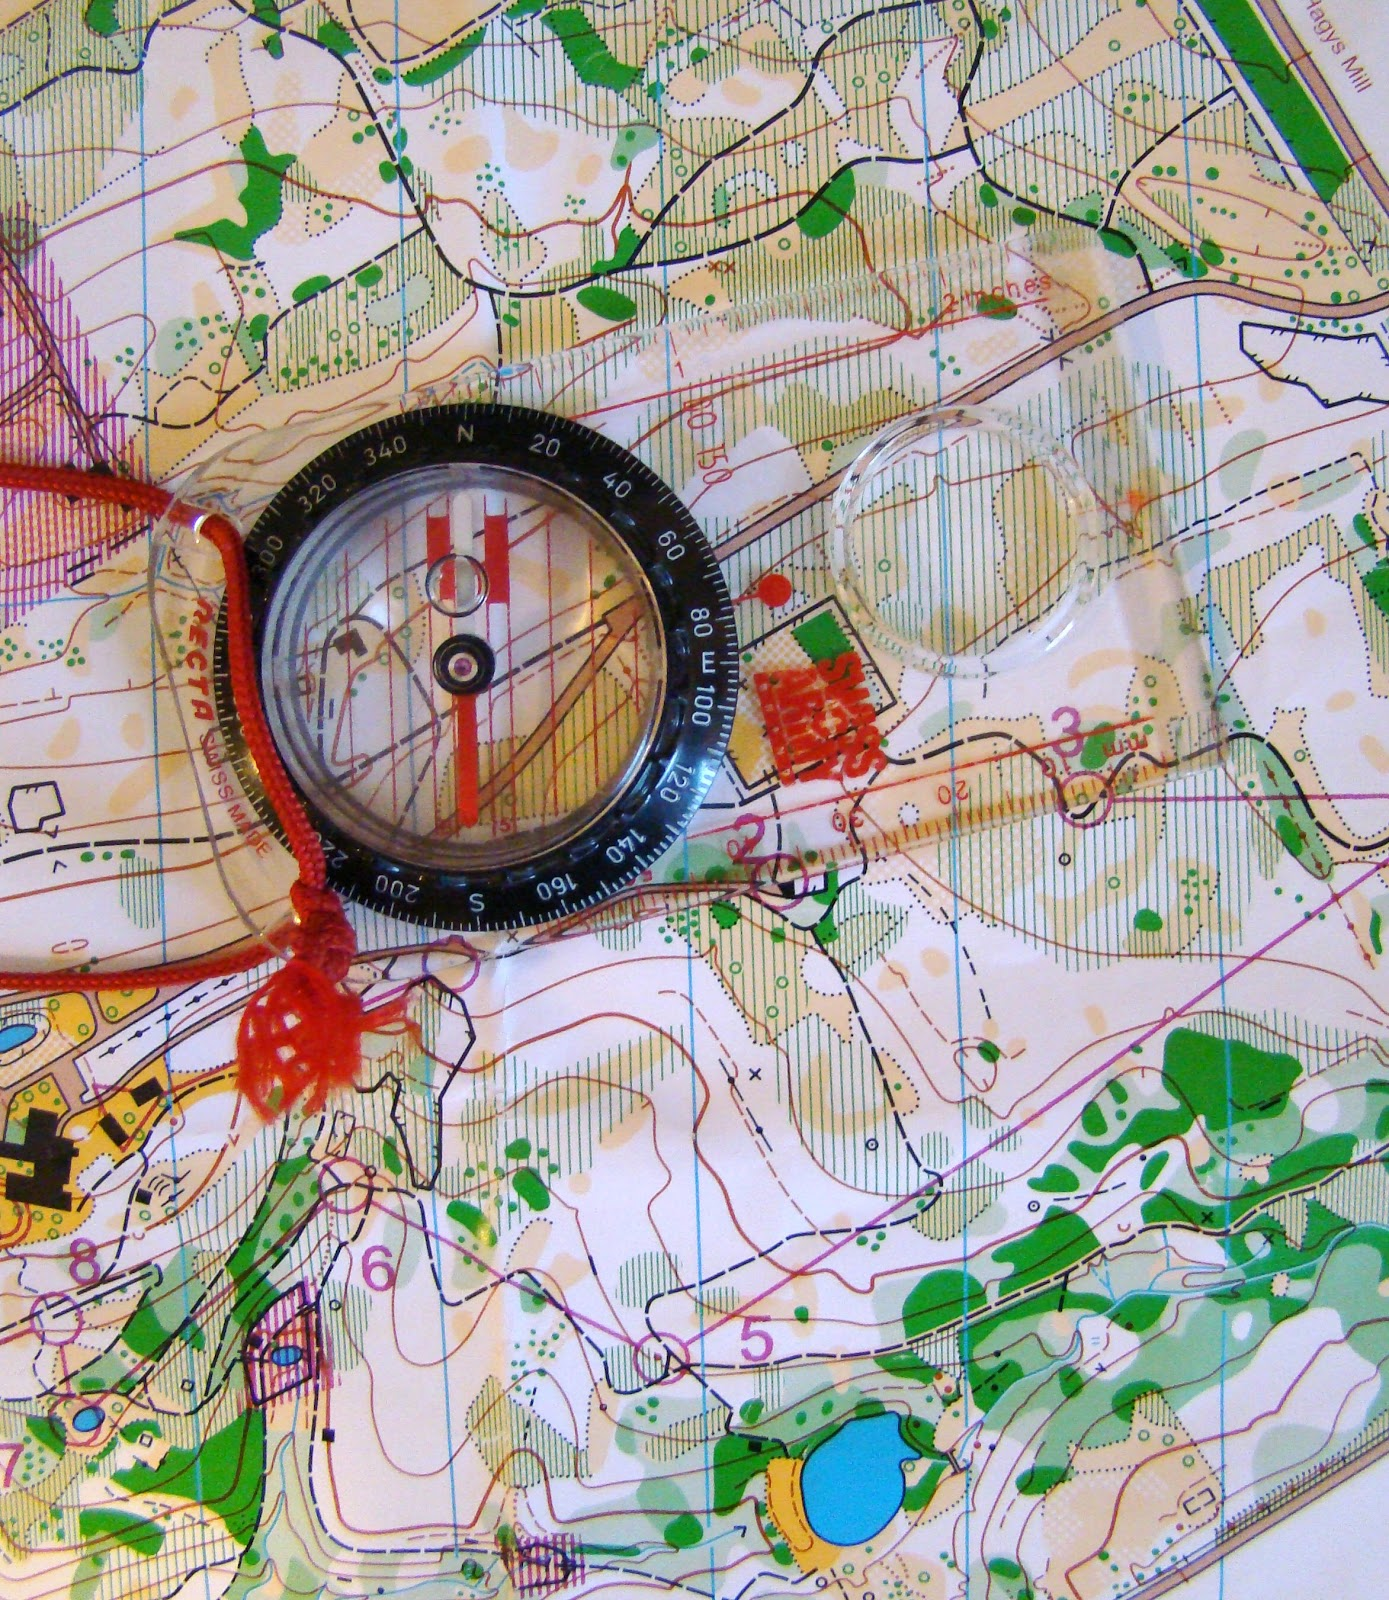 Orienteering In Greece Using The Compass In Interaction